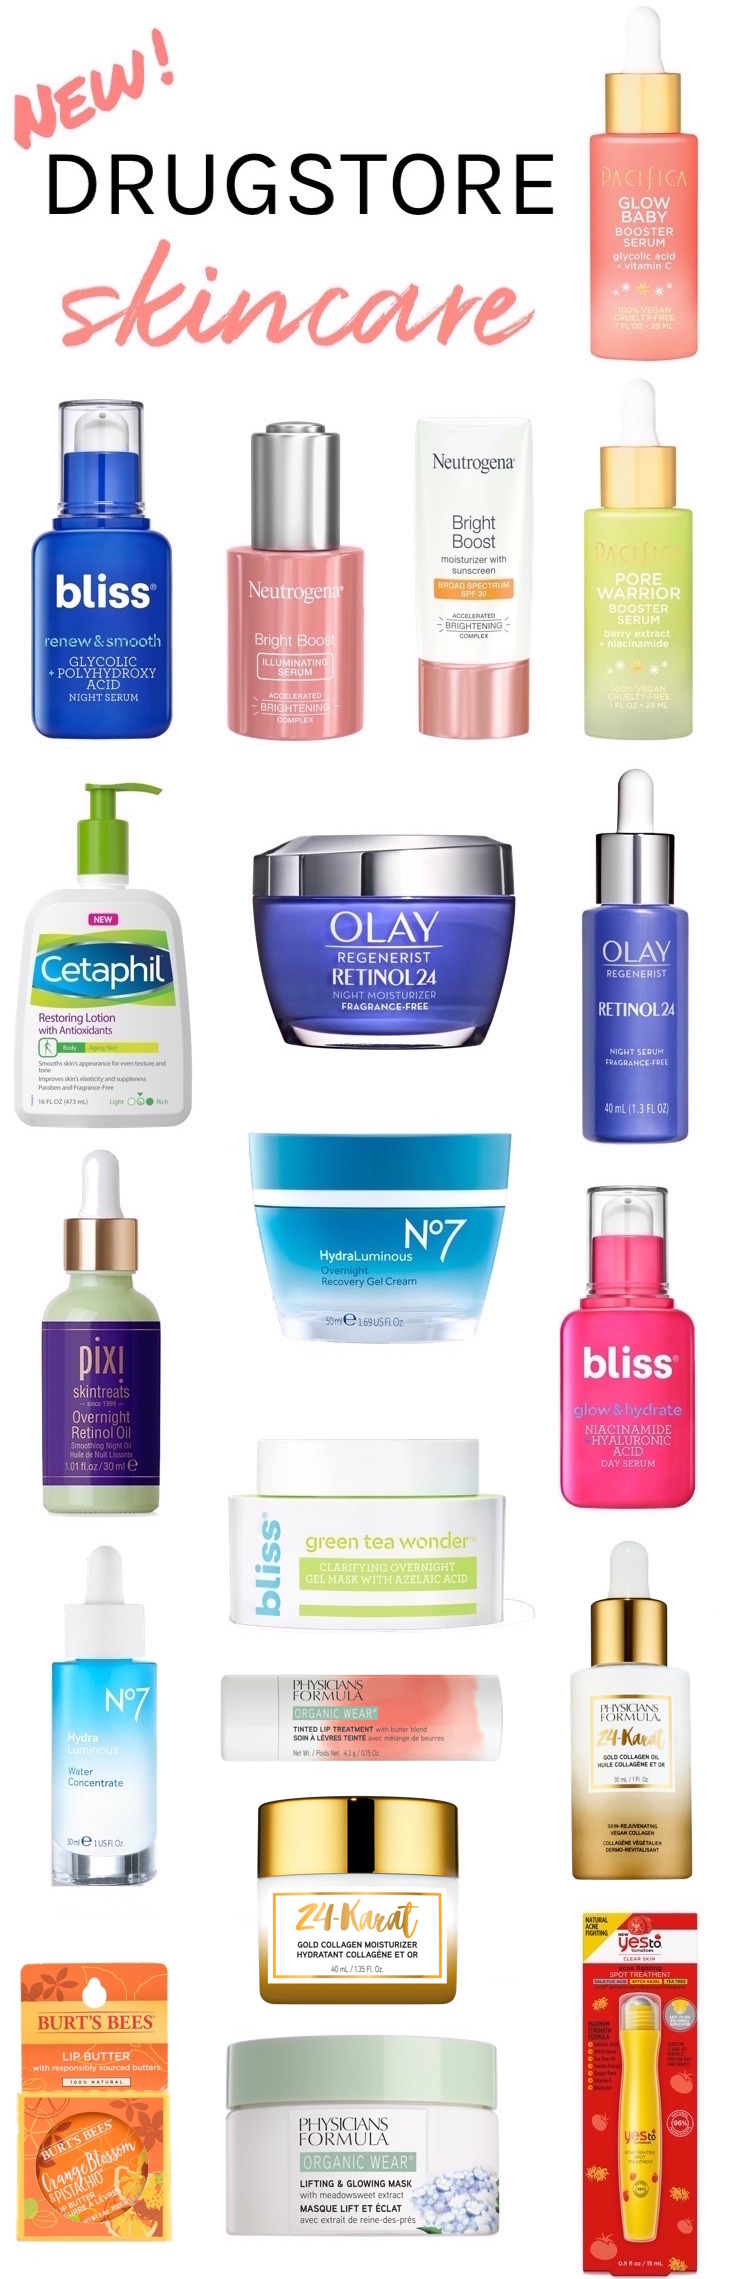 New Drugstore Skincare Fall 2019